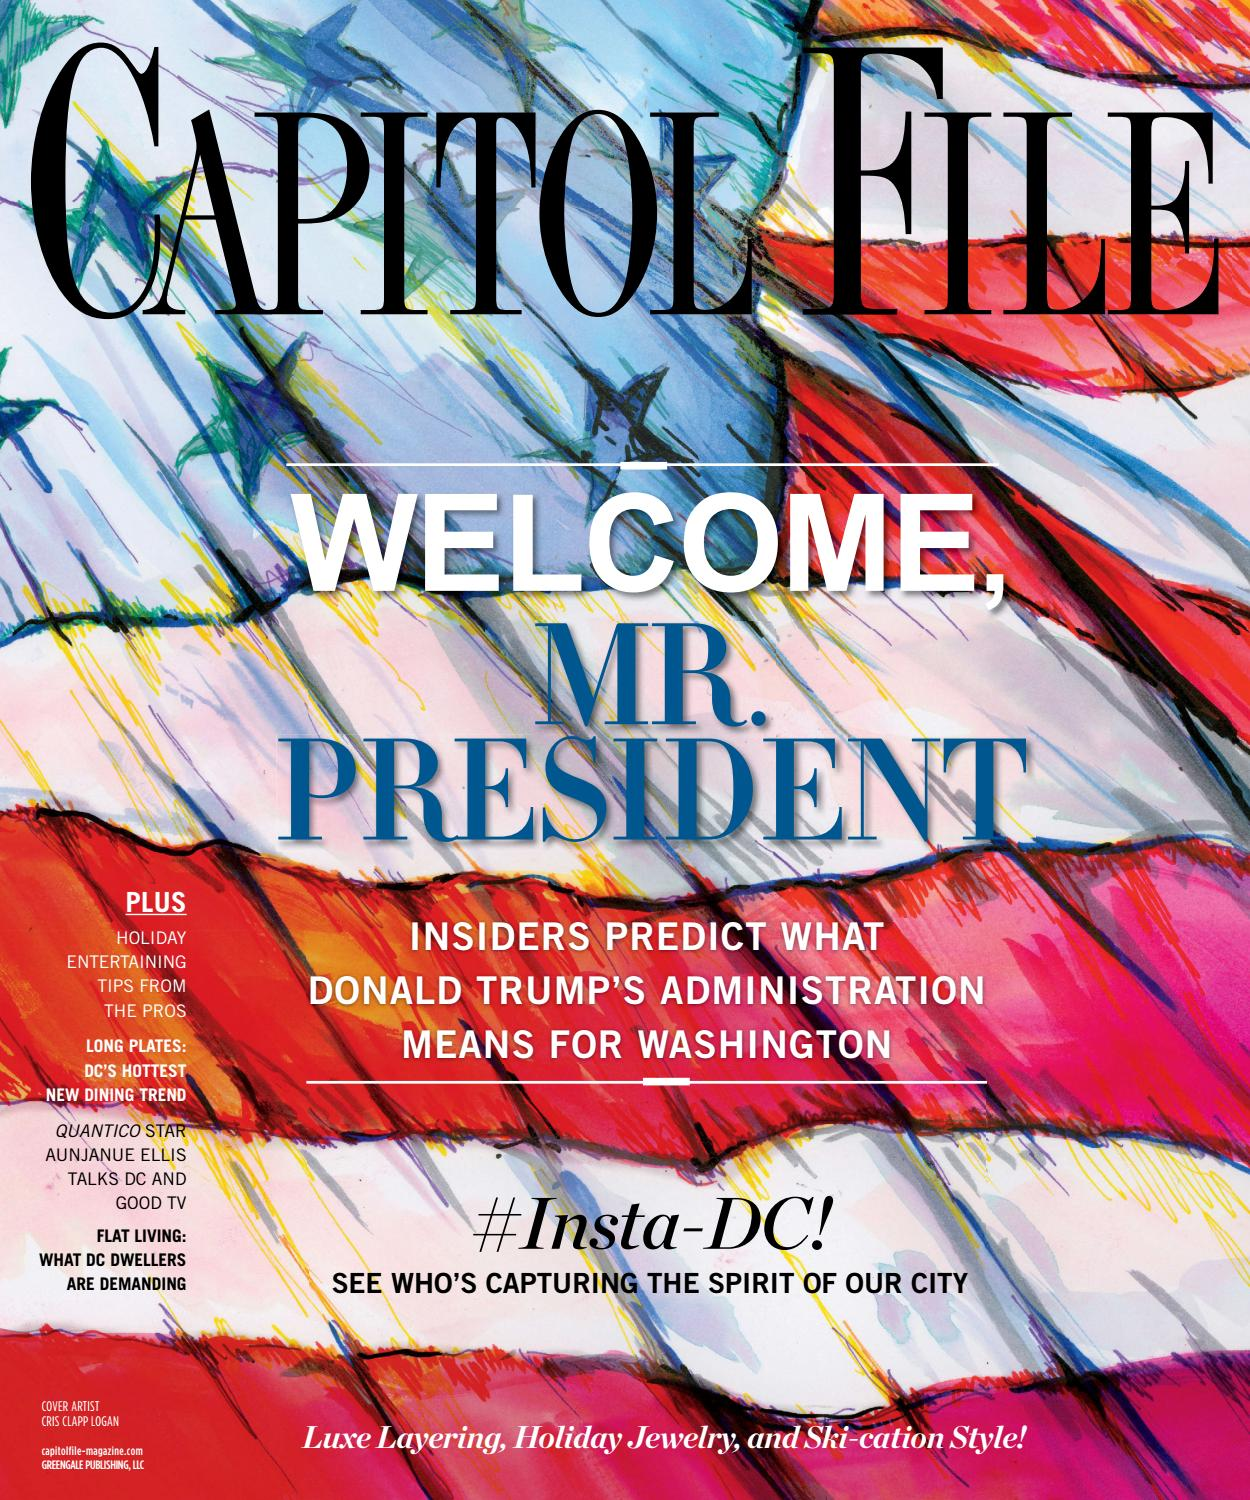 Capitol File - 2016 - Issue 6 - Winter - Welcome, Mr. President by MODERN  LUXURY - issuu